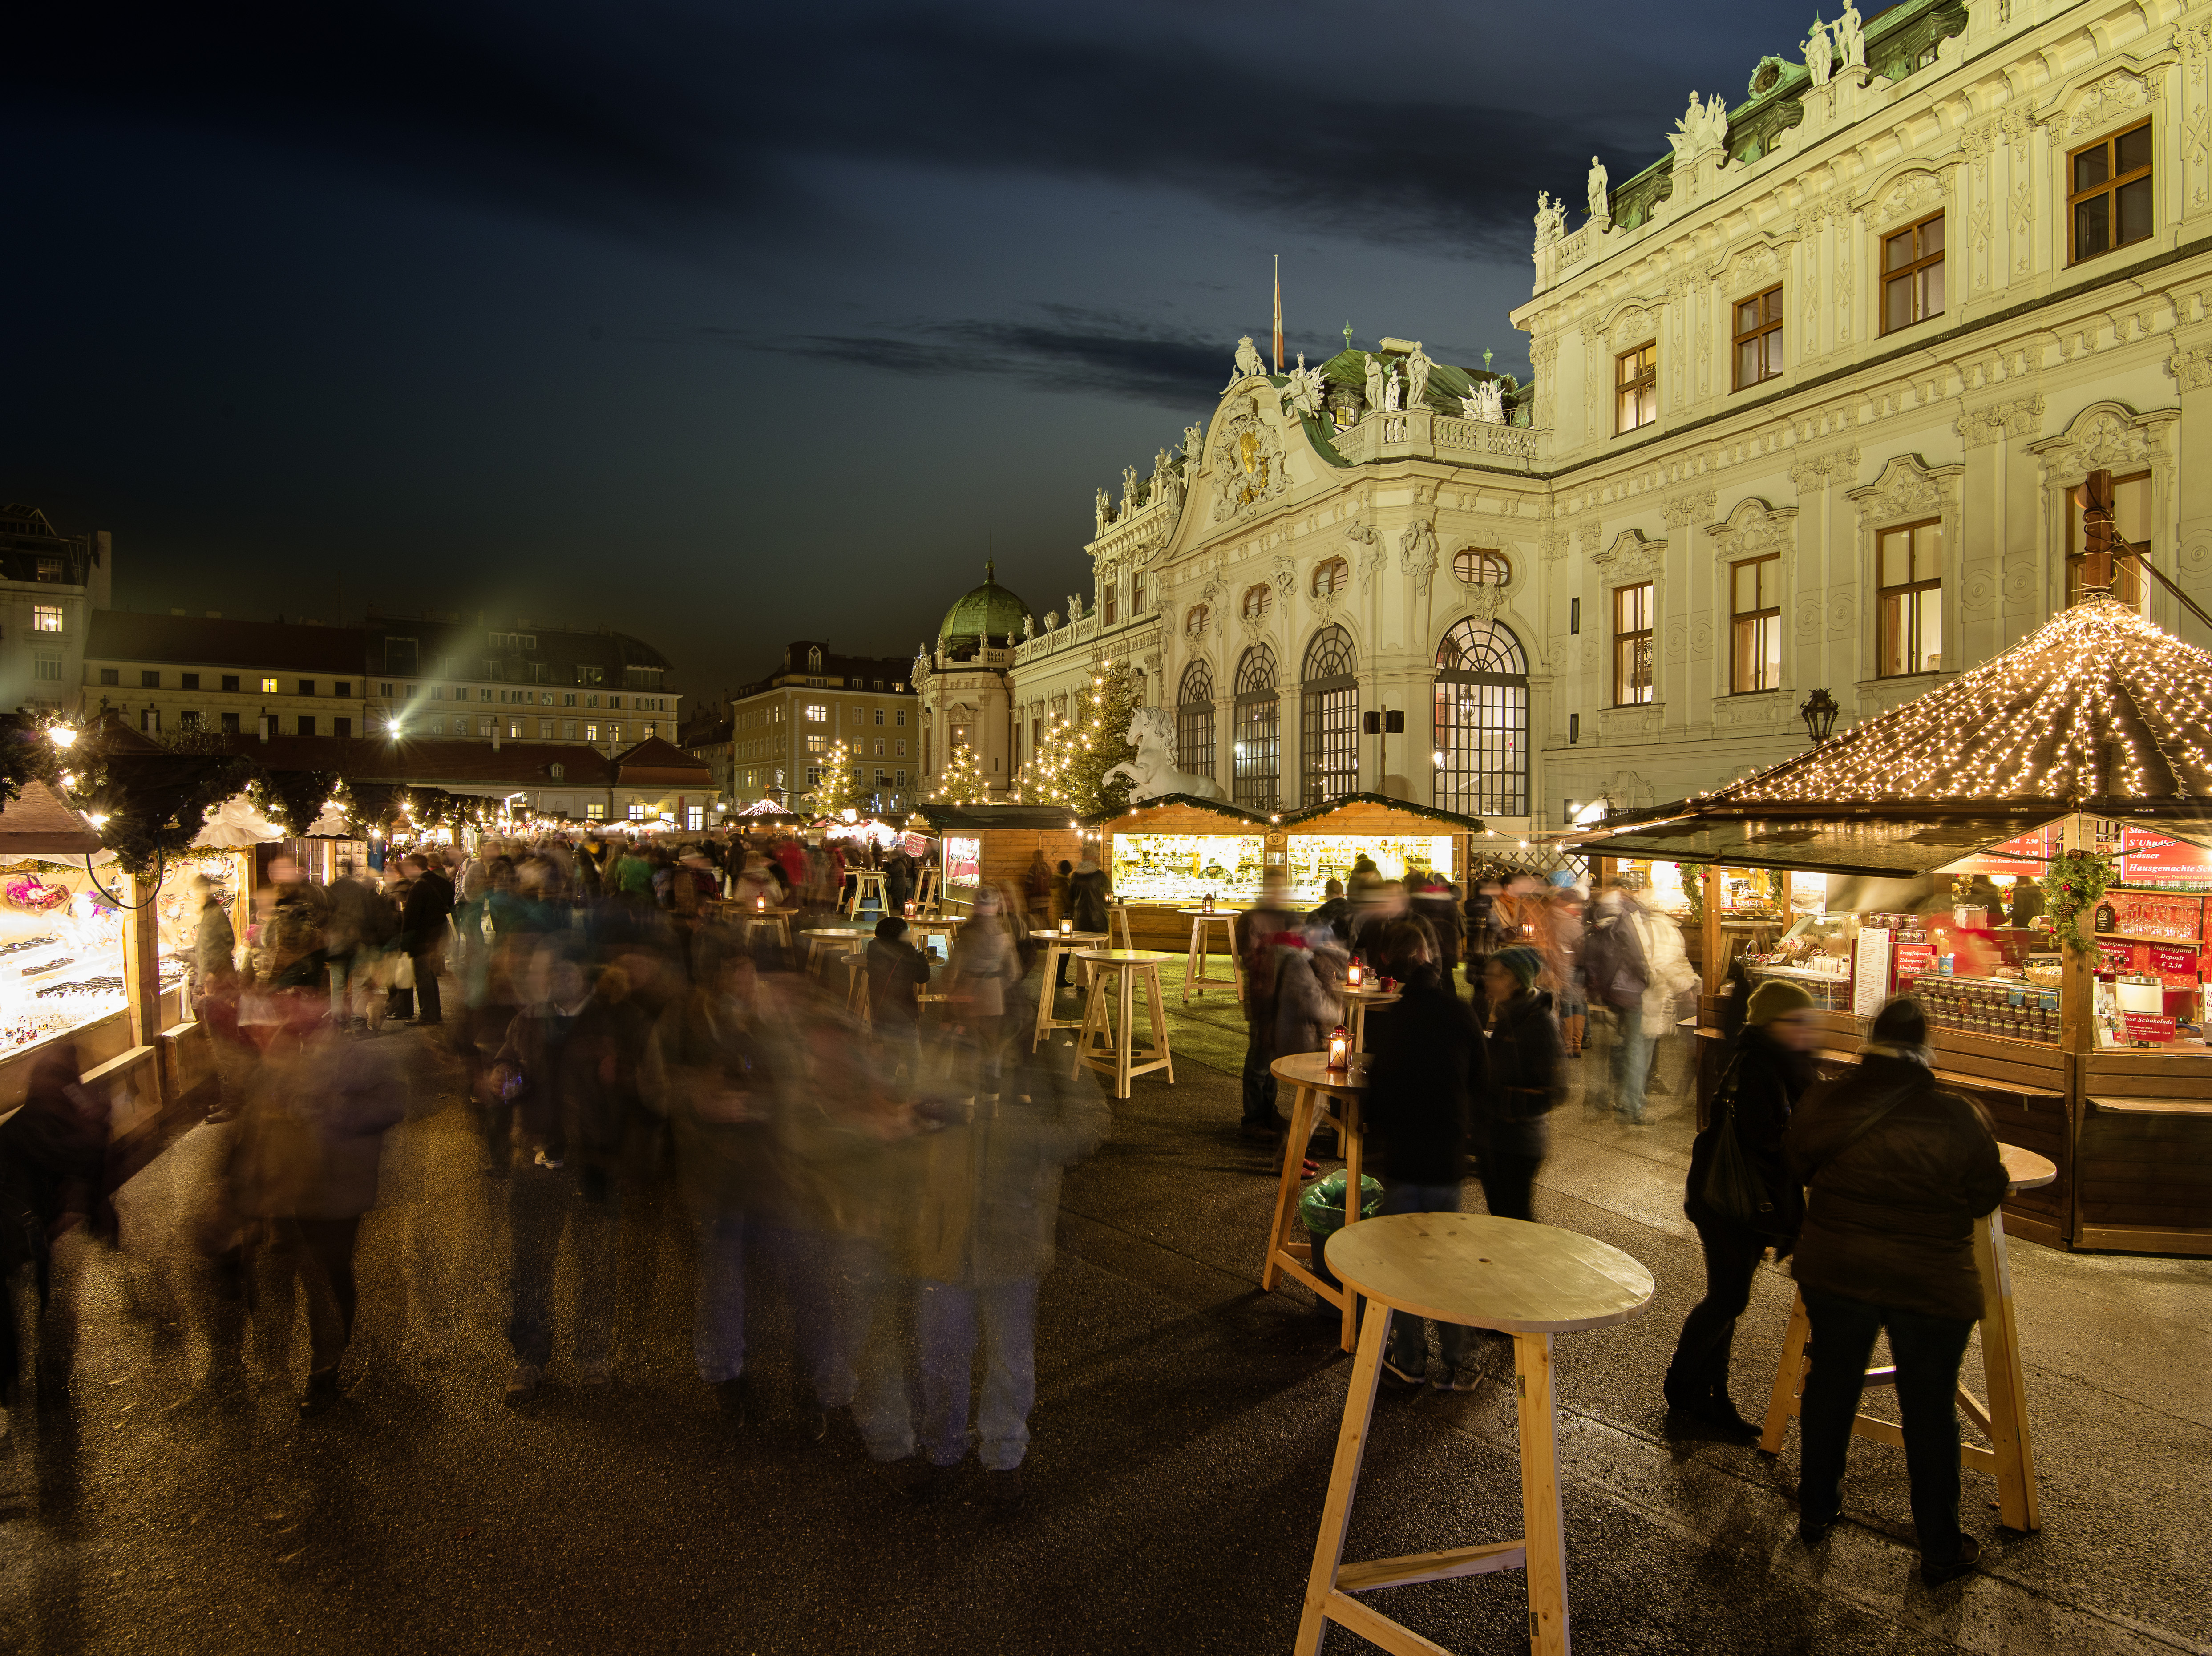 idea and duly sie sucht ihn bodensee markt de has touched it! has